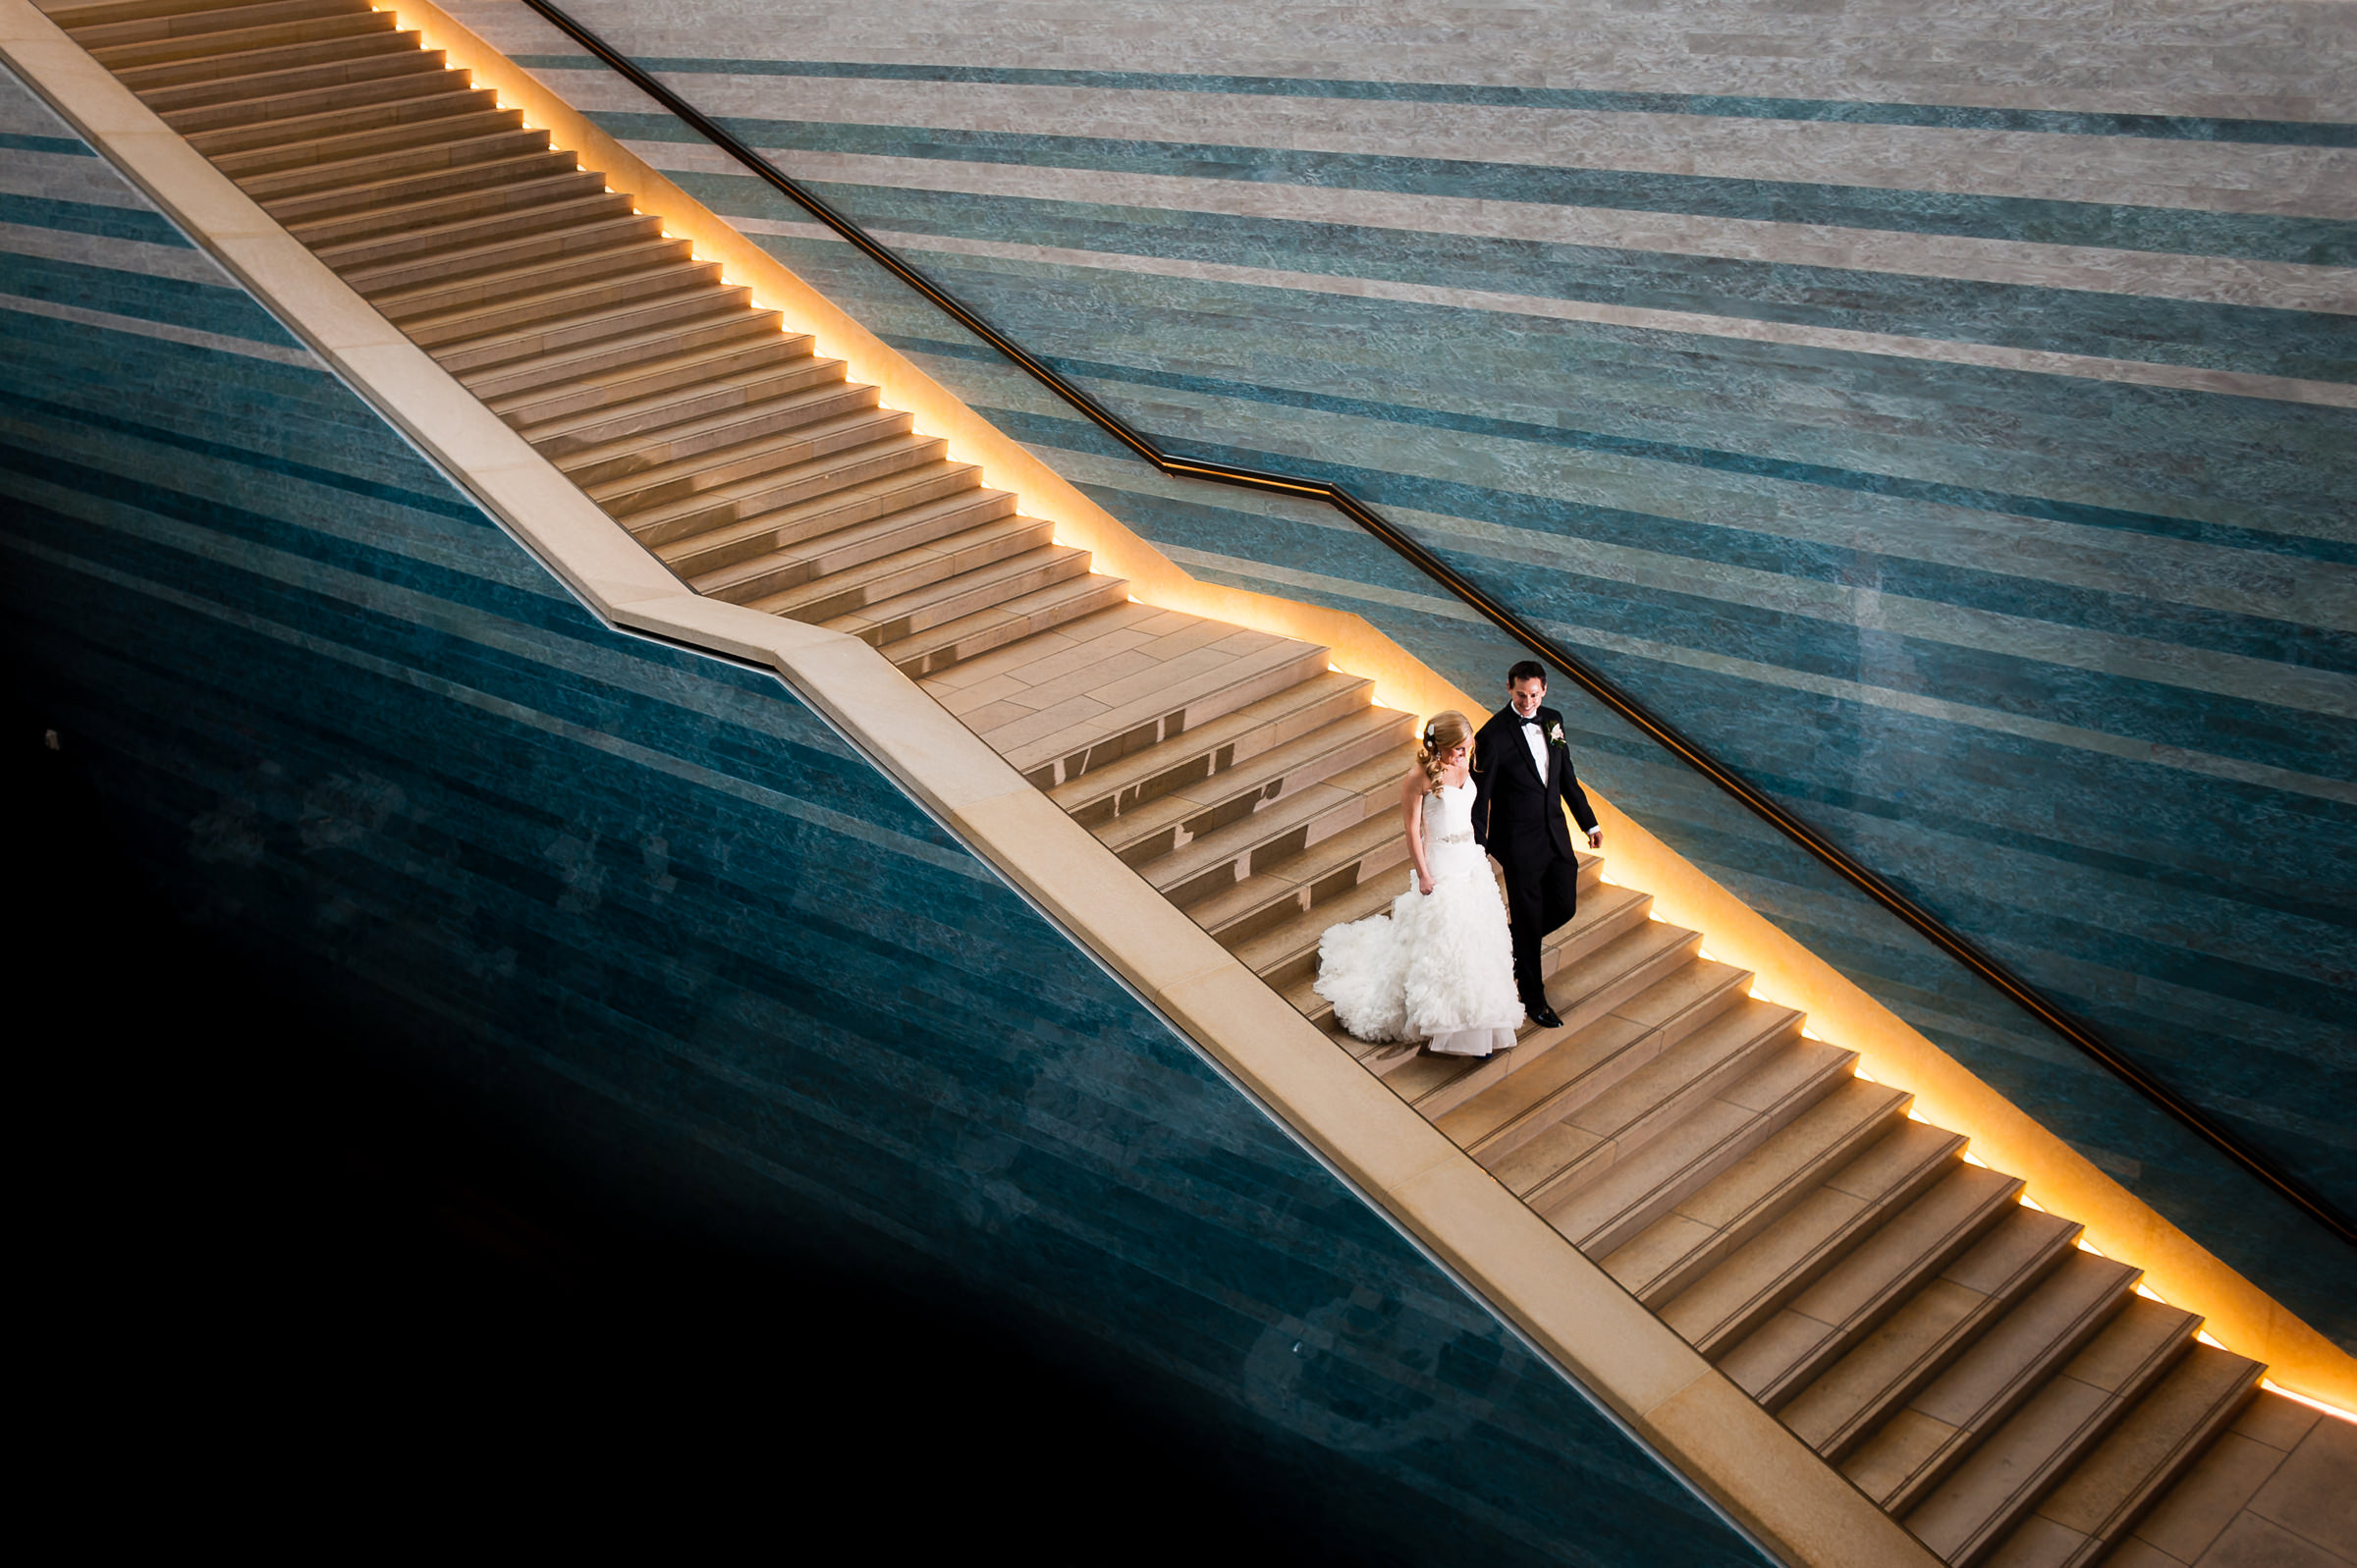 Couple descending epic staircase - photo by Jenny DeMarco Photography